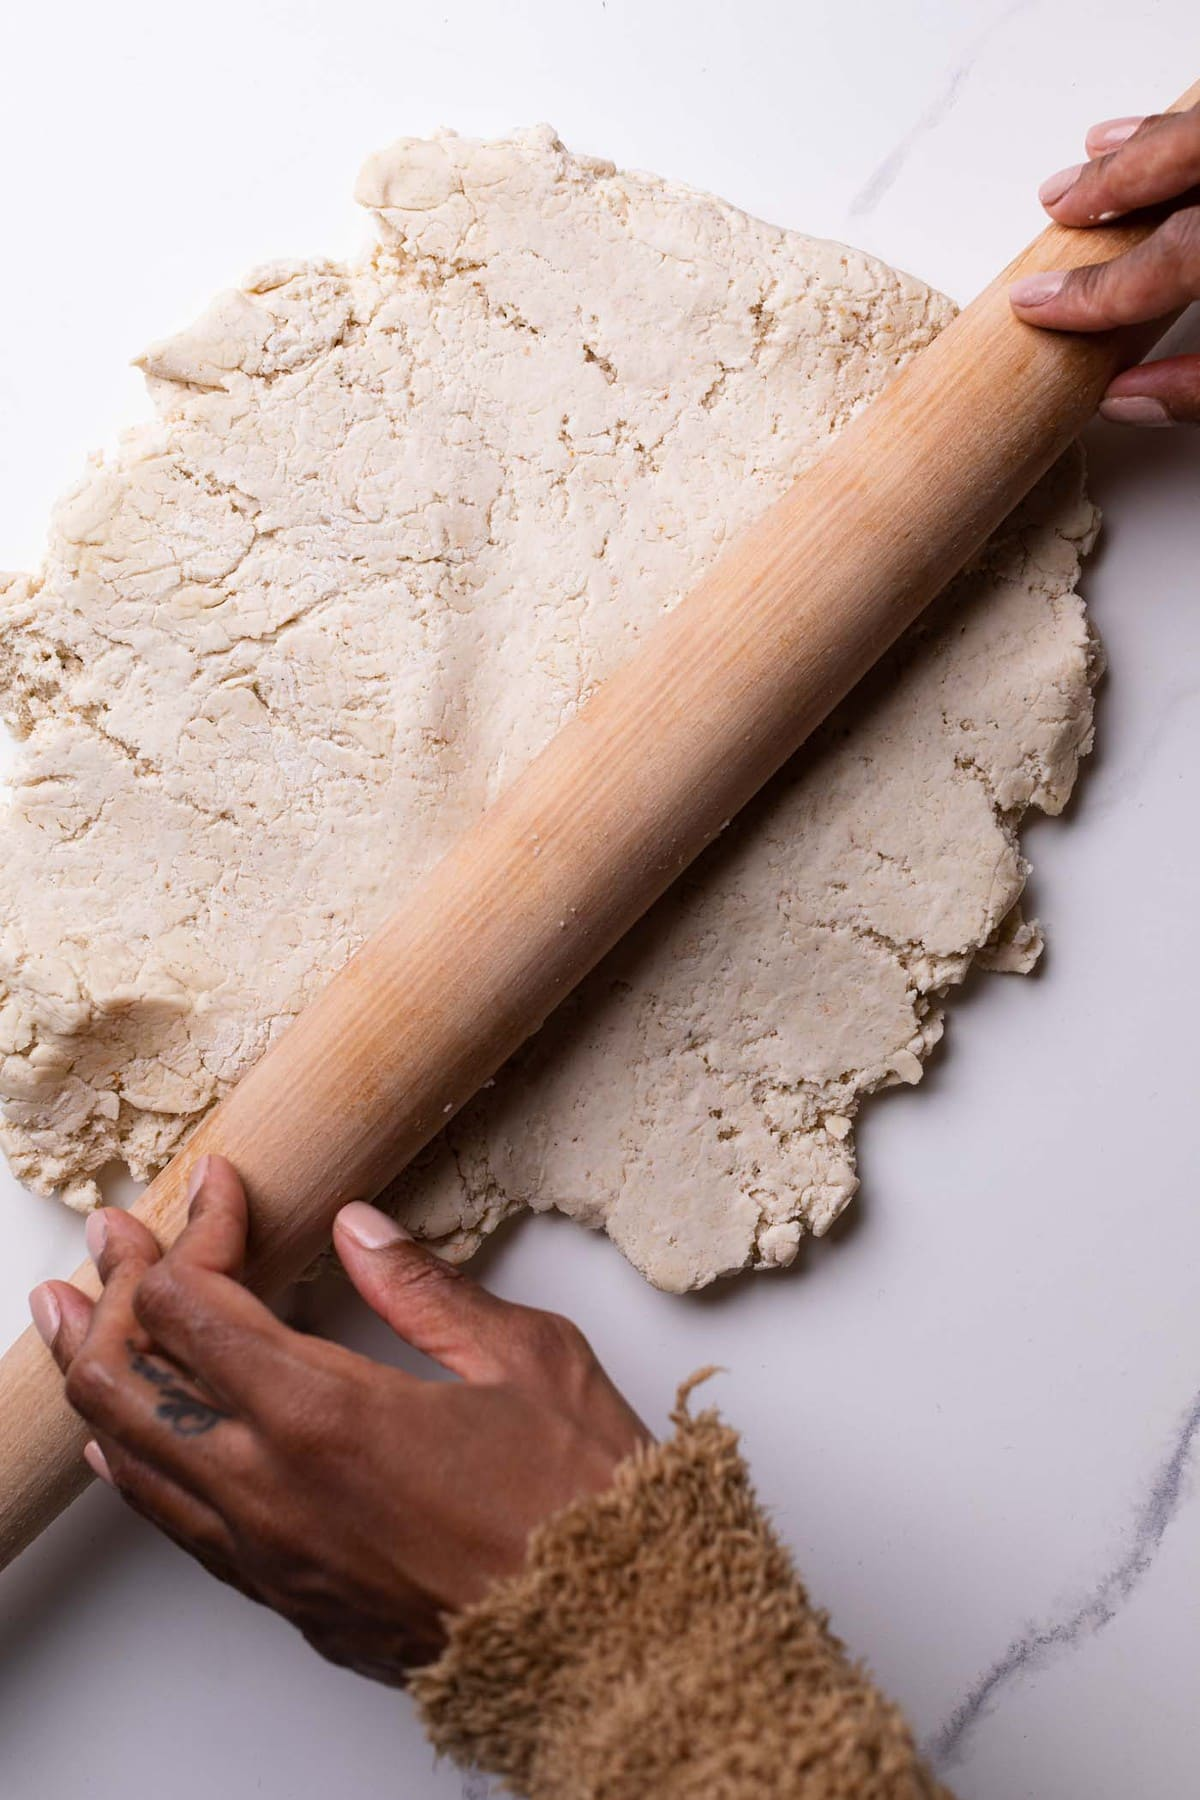 Easy Homemade Gluten-Free Pizza Crust being rolled out by a wooden rolling pin